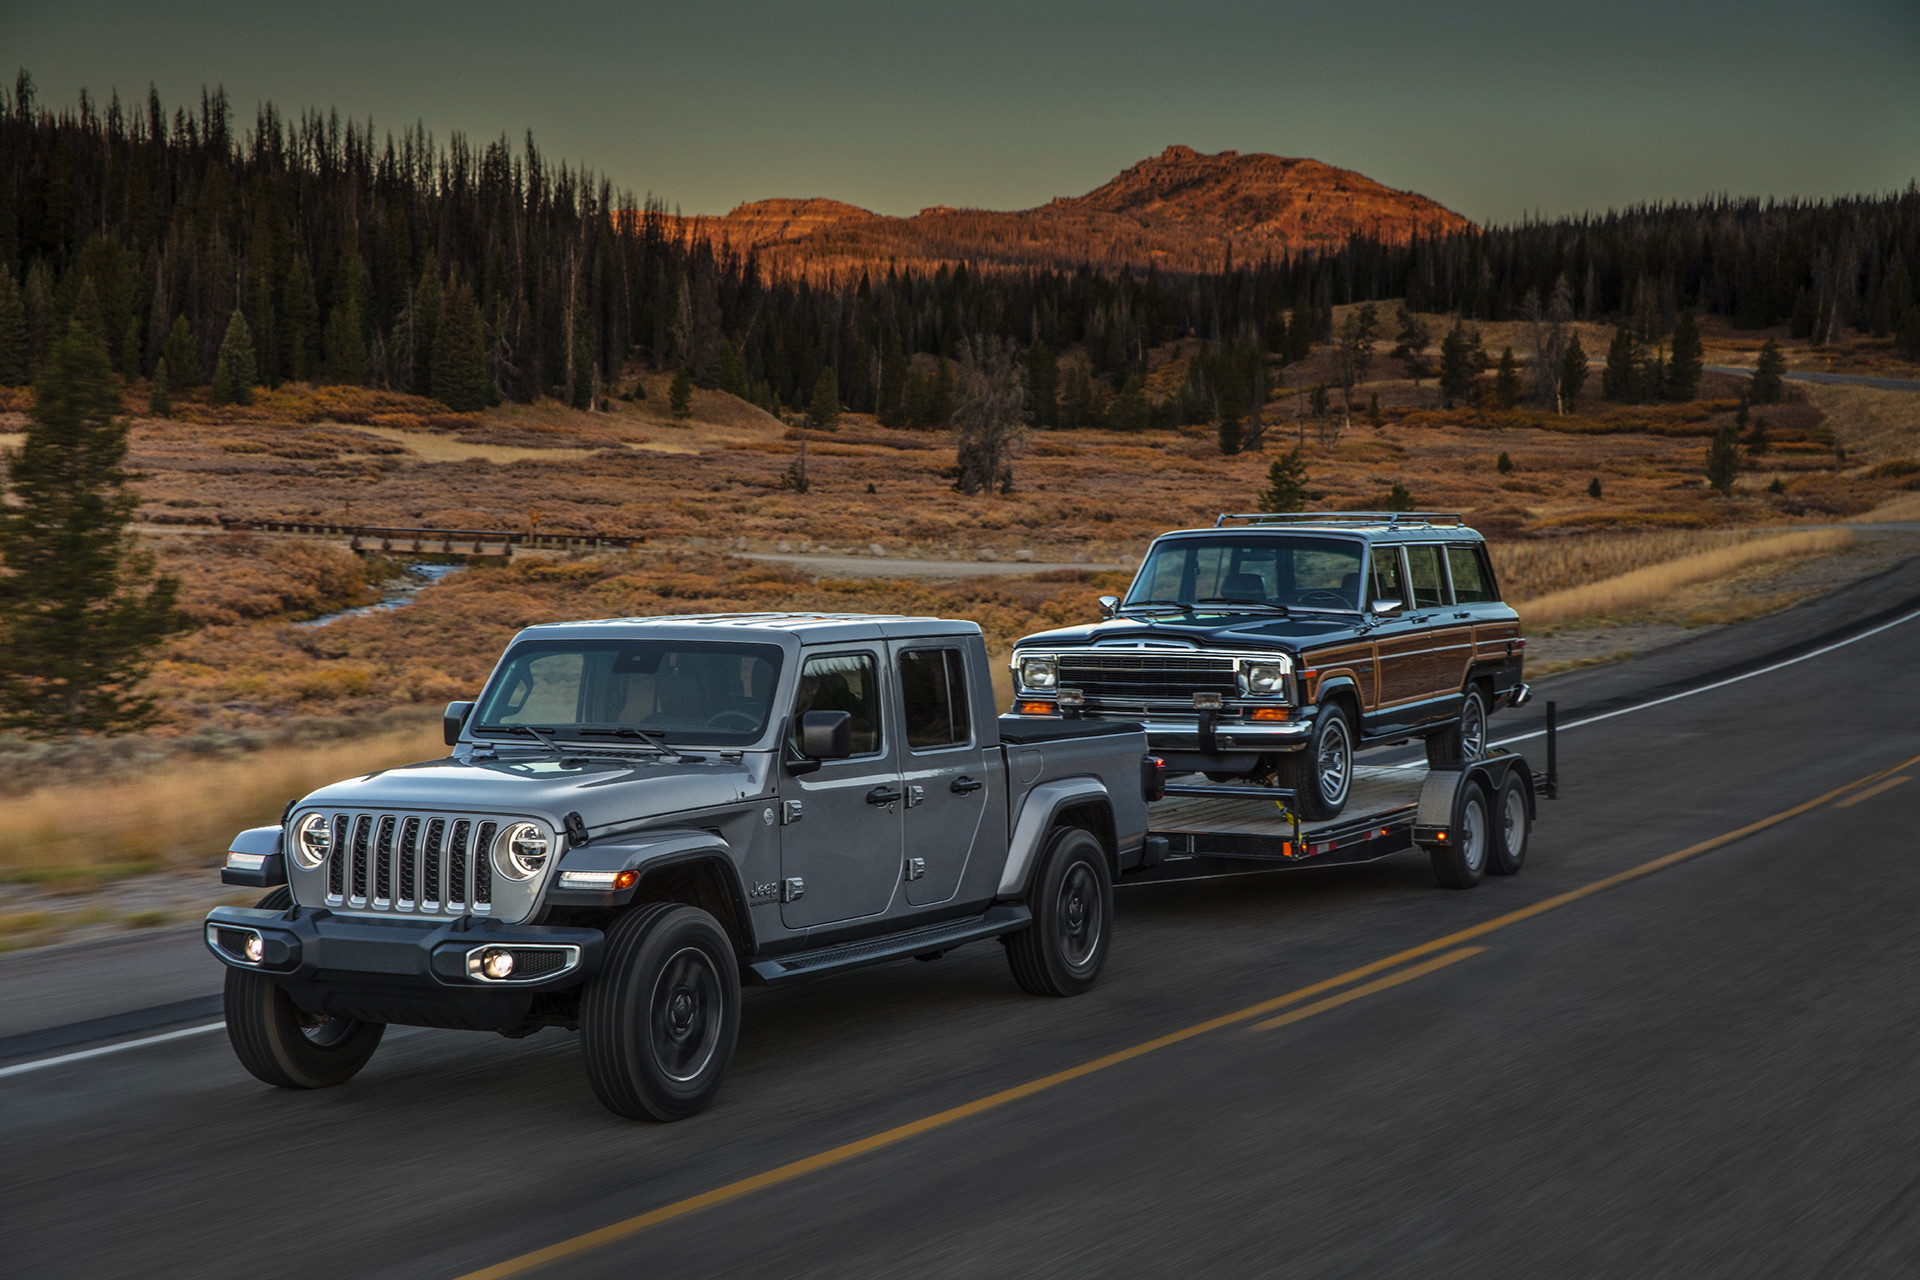 2020 Jeep Gladiator exterior in grey shown towing a car.